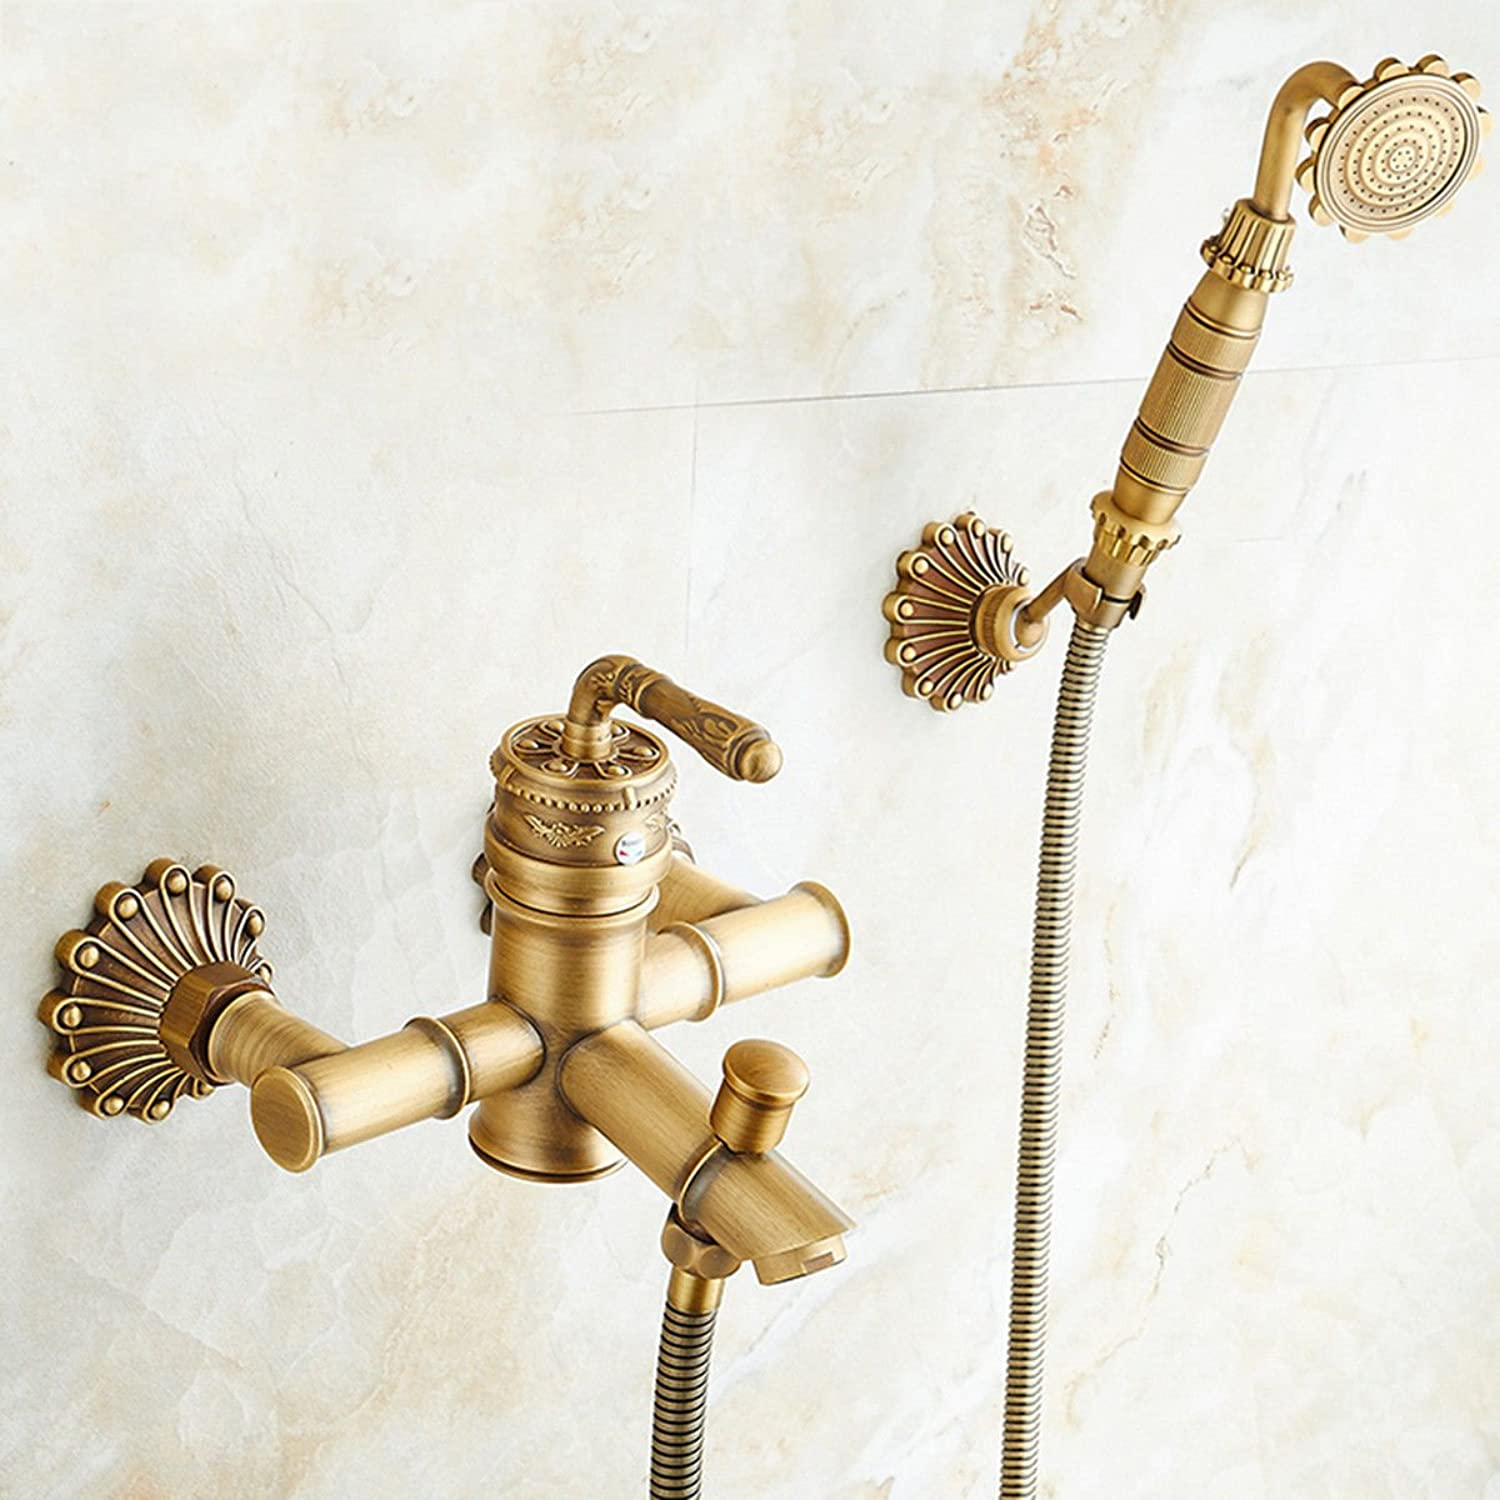 NewBorn Faucet Kitchen Or Bathroom Sink Mixer Tap The S Are Black Rain Shower Kit Shower Water Tap Antique Style Wall Shower Water Tap S Shower Black